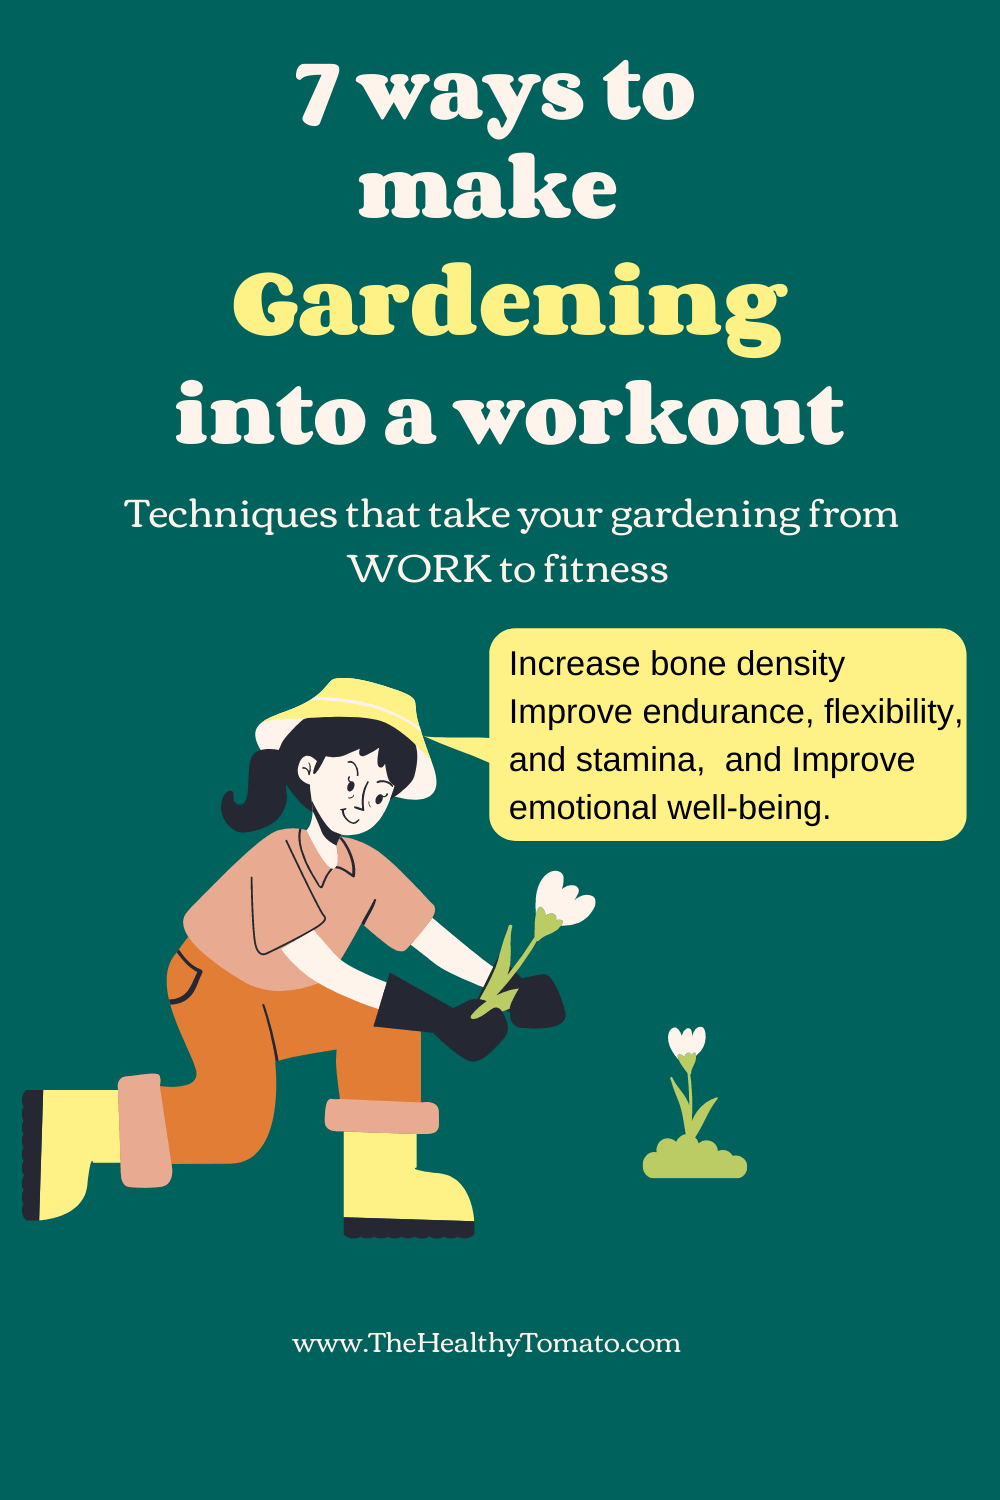 Is Gardening Considered Exercise?